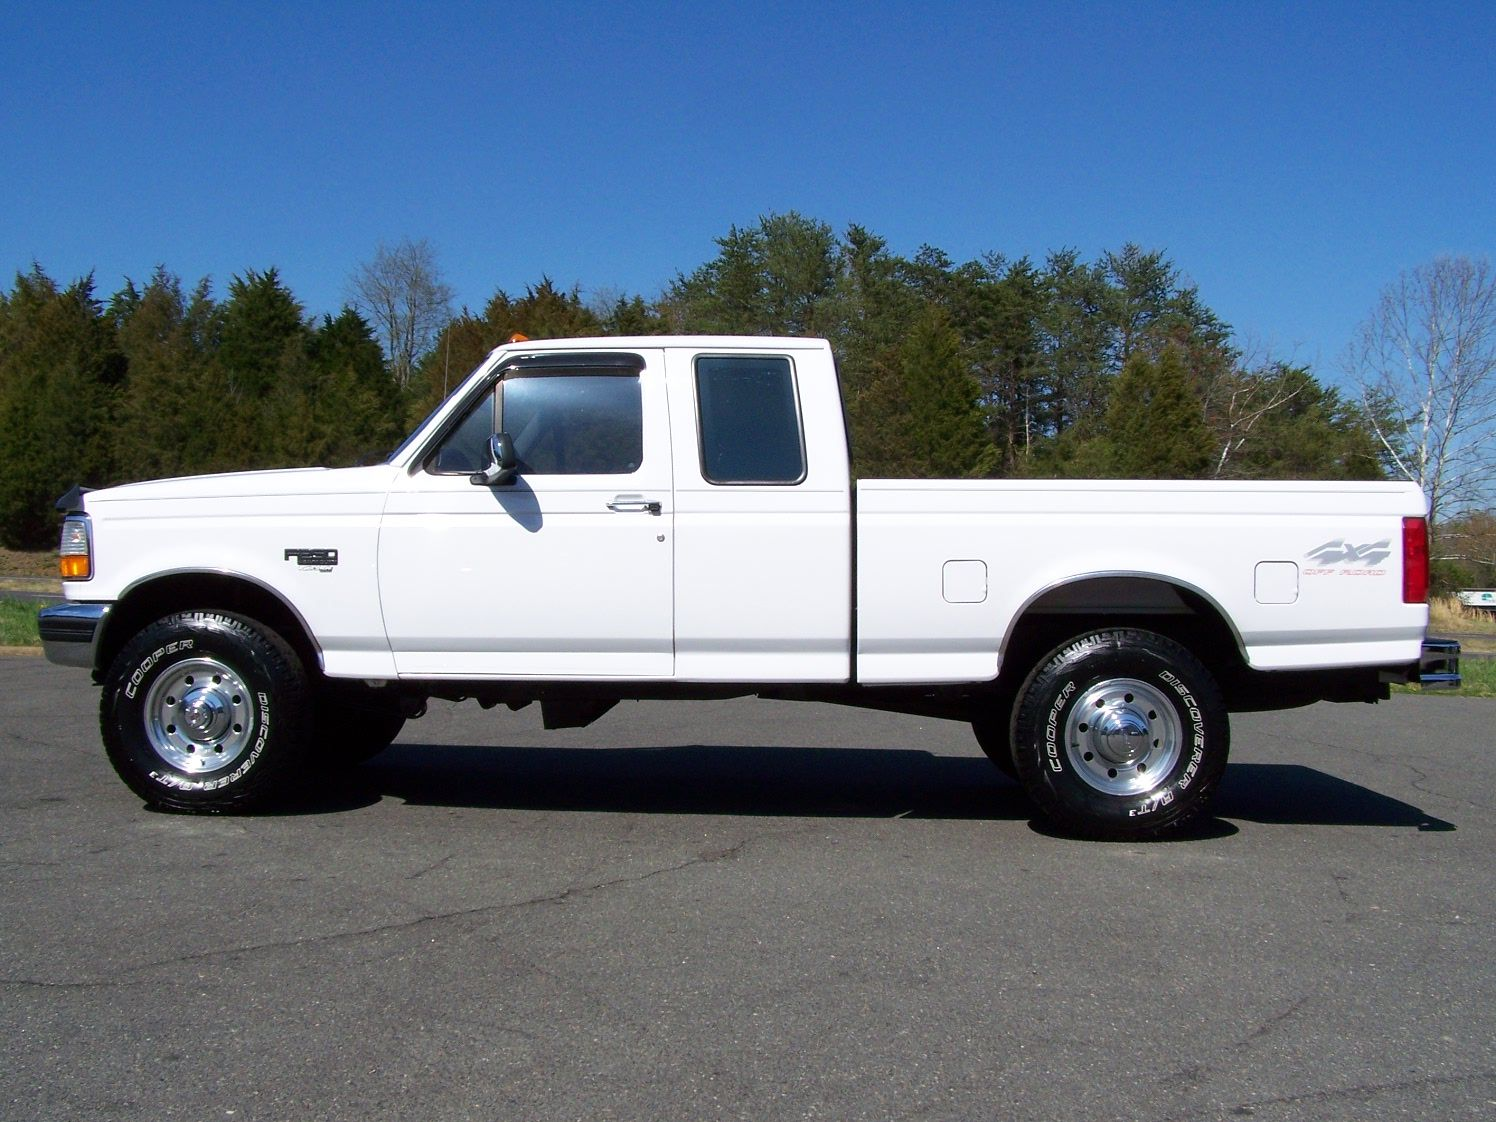 Www emautos com 1997 ford f250 extended cab xlt 4x4 7 3l powerstroke diesel